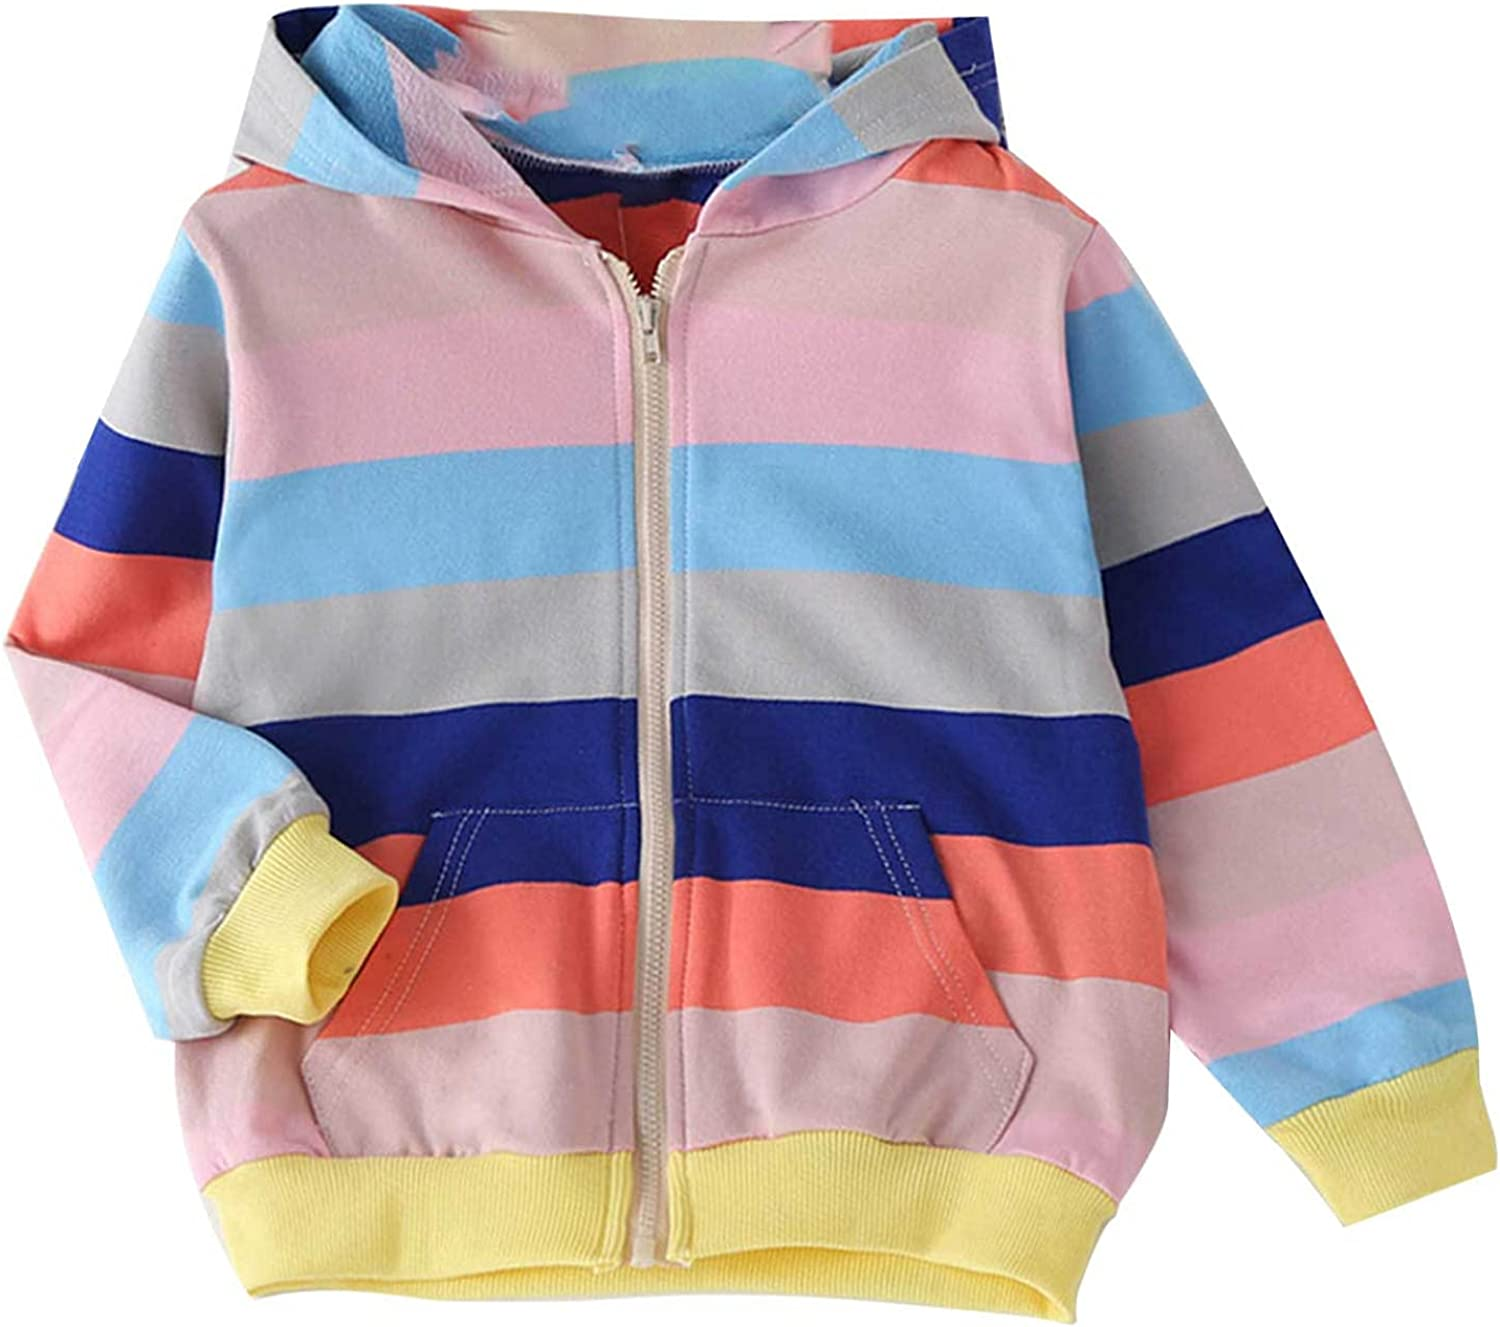 Loyan Girls Toddler Zip up Hoodie Sweatshirt Youth Pullover Rainbow Loose Hooded Tops Jumper Outfits with Pockets